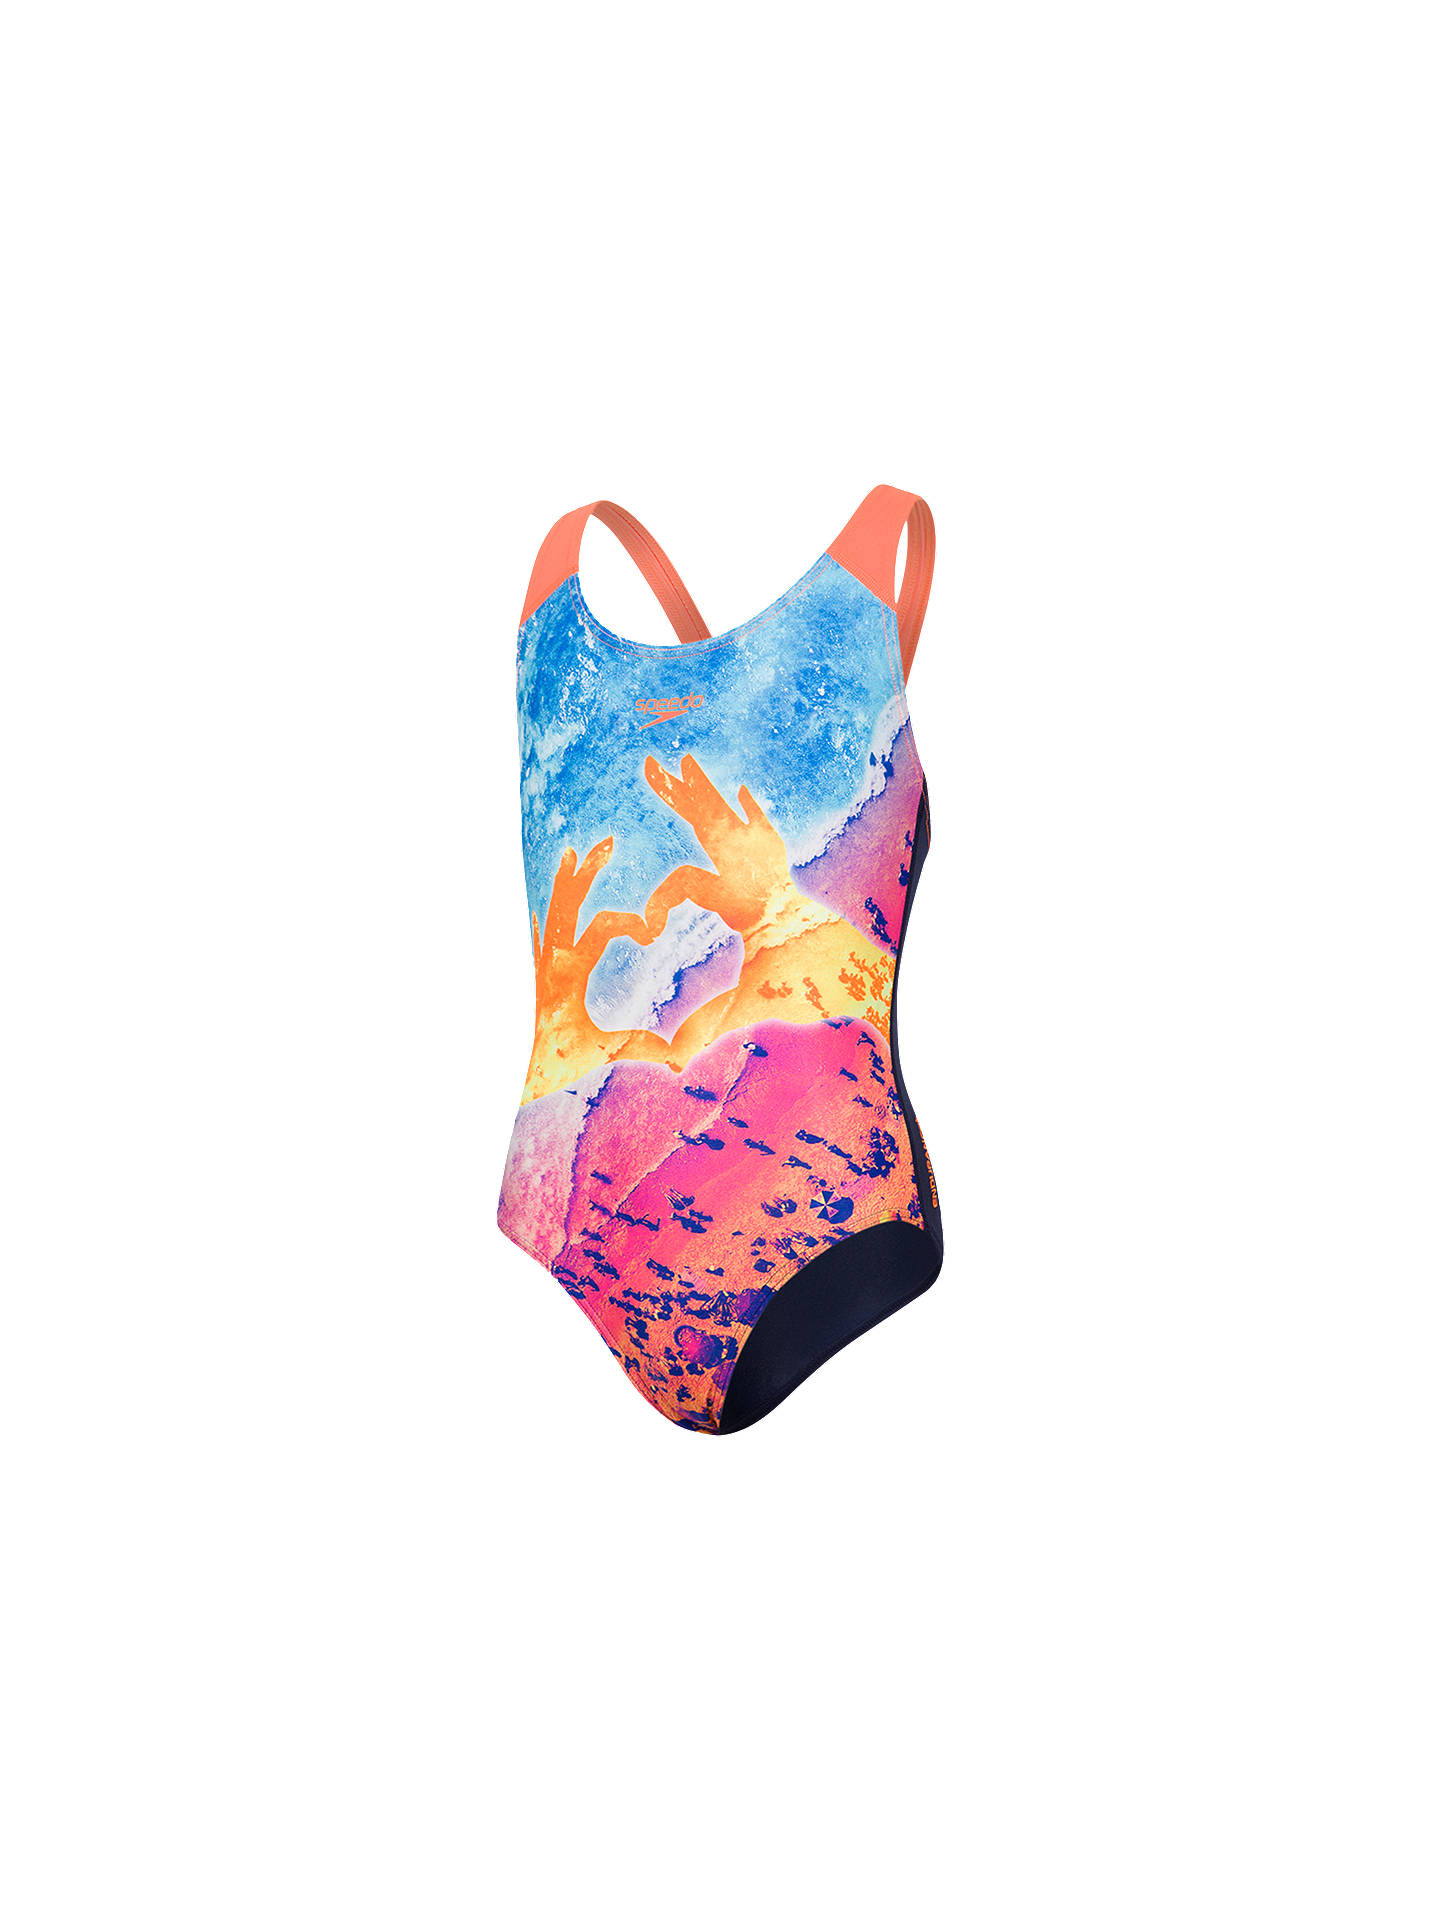 995bf0180c Buy Speedo Girls' Digital Splashback Swimsuit, Multi, 30 Online at  johnlewis. ...